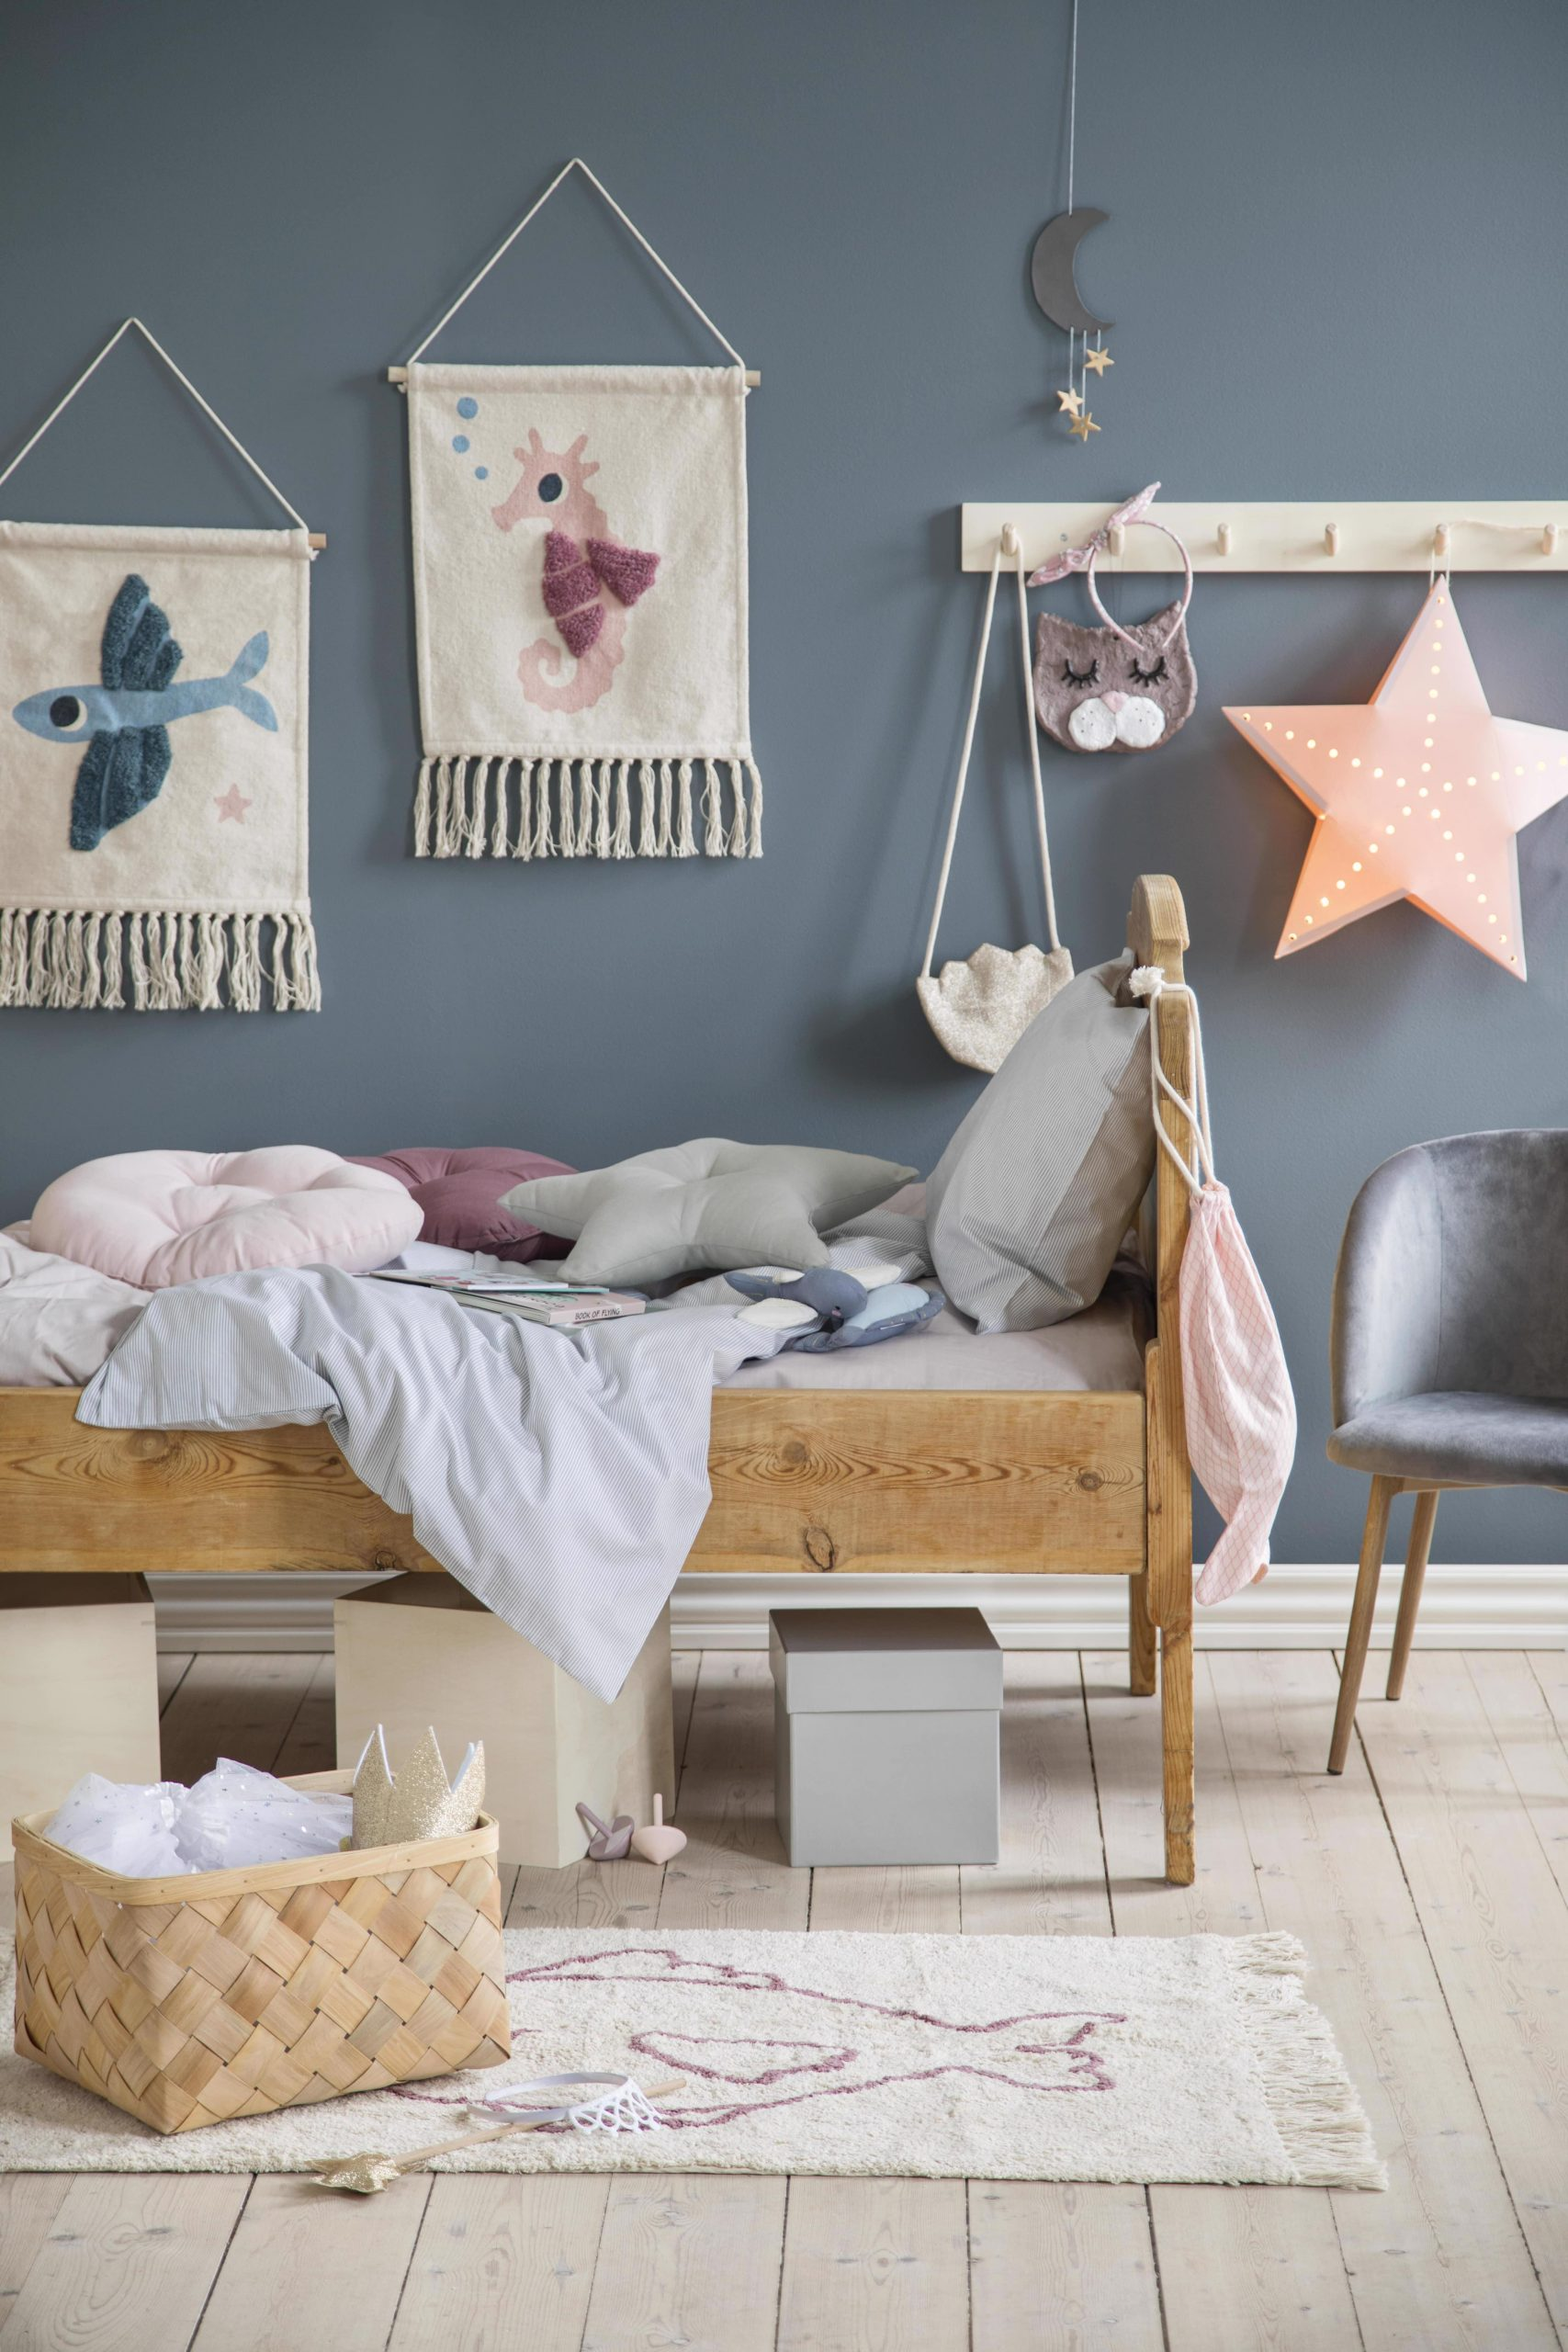 Available 23 April 2020 SostreneGrene 08 min 4480x6720 1 scaled - Sostrene Grene - Kinderinterieur en Speelgoed Collectie 2020